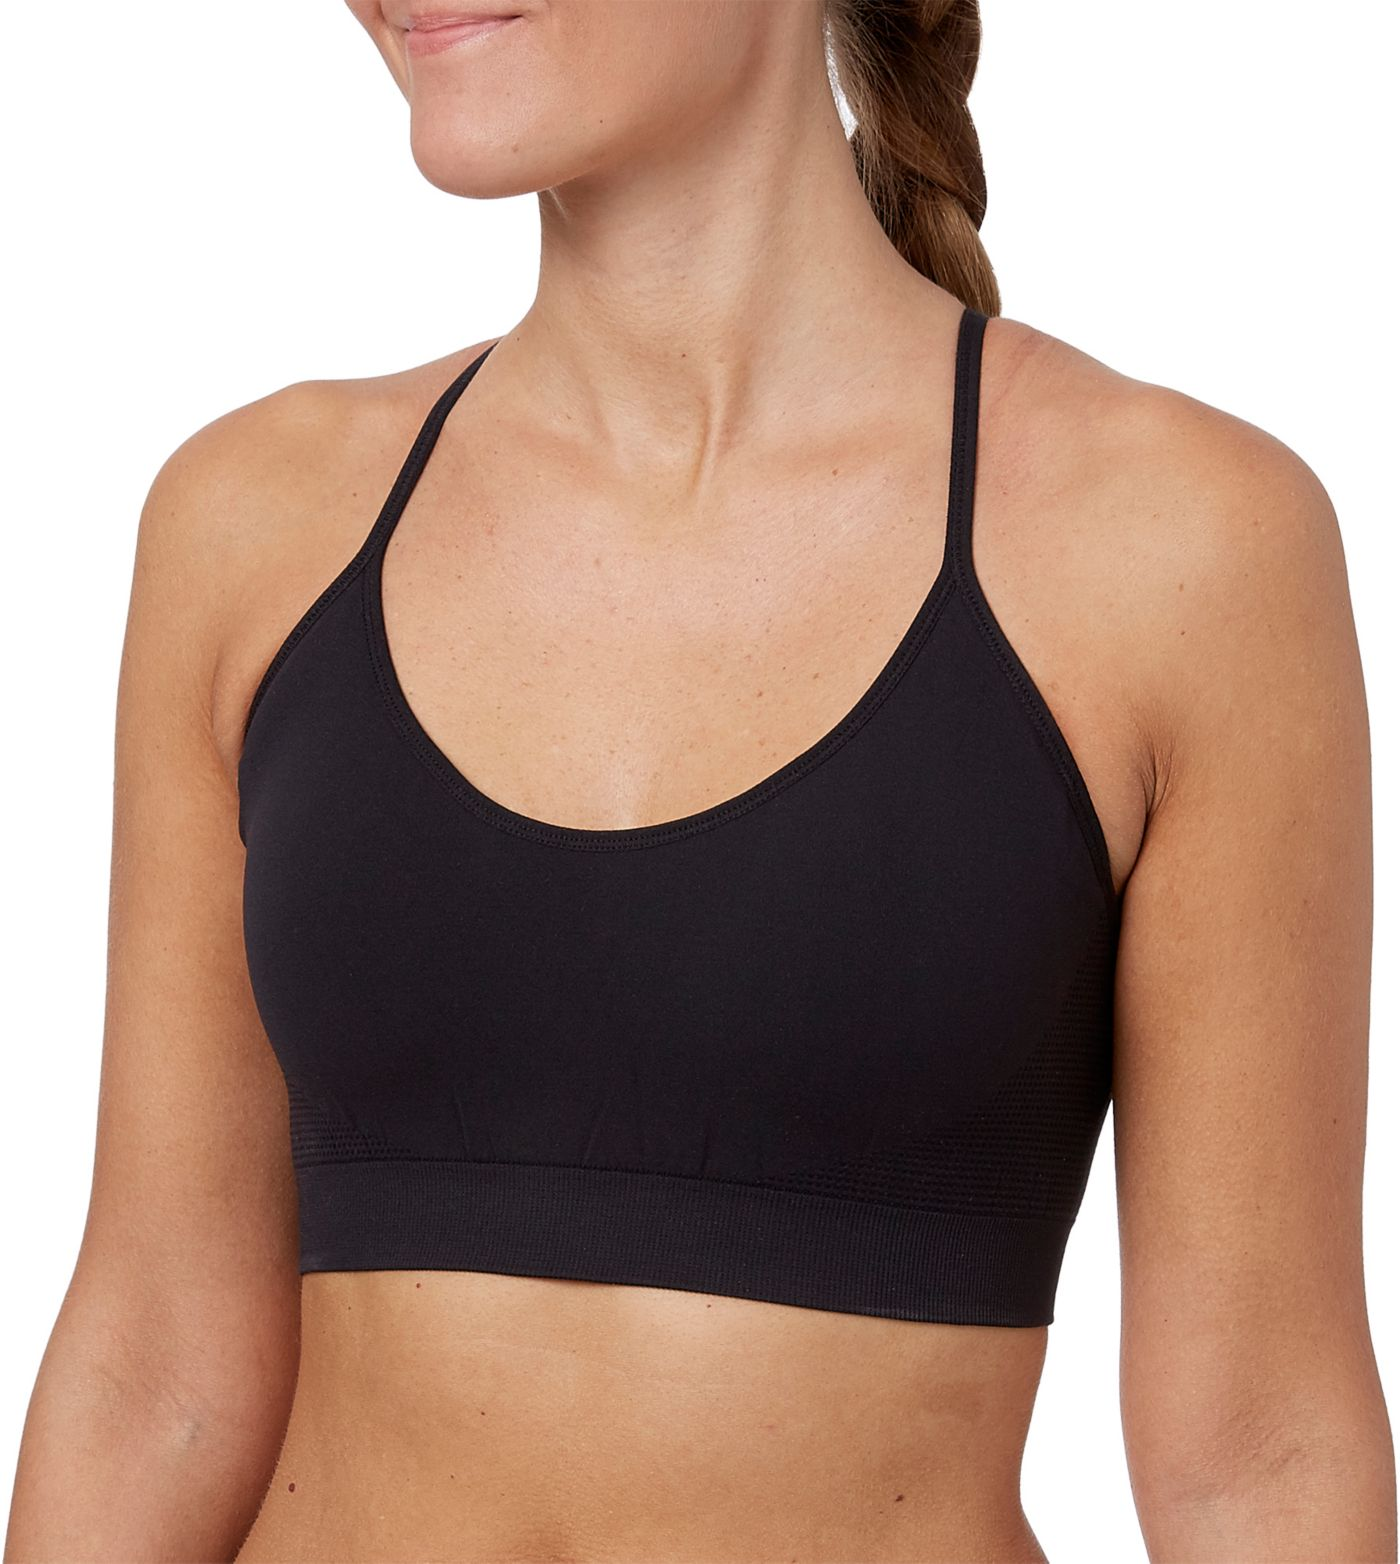 Reebok Women's Strappy Cami Seamless Sports Bra